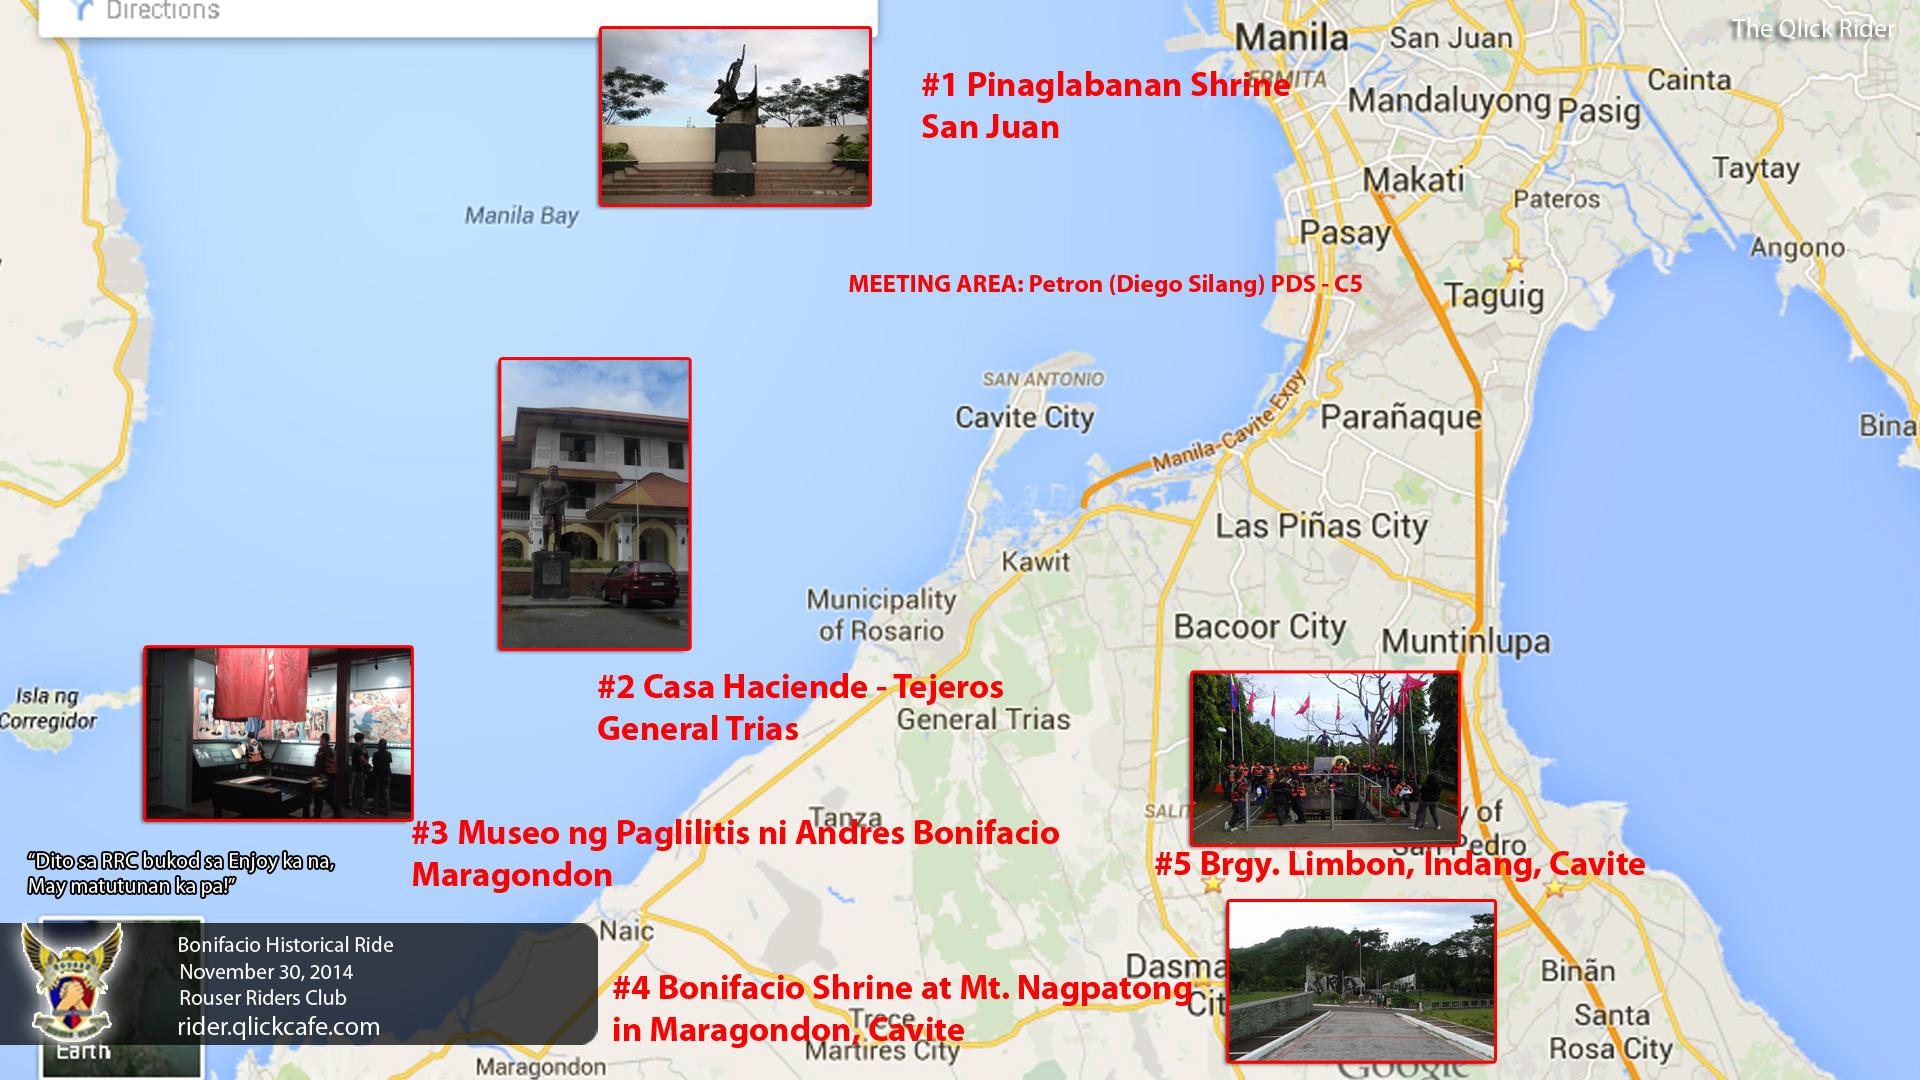 bonifacio-ride-route-rouser-riders-club